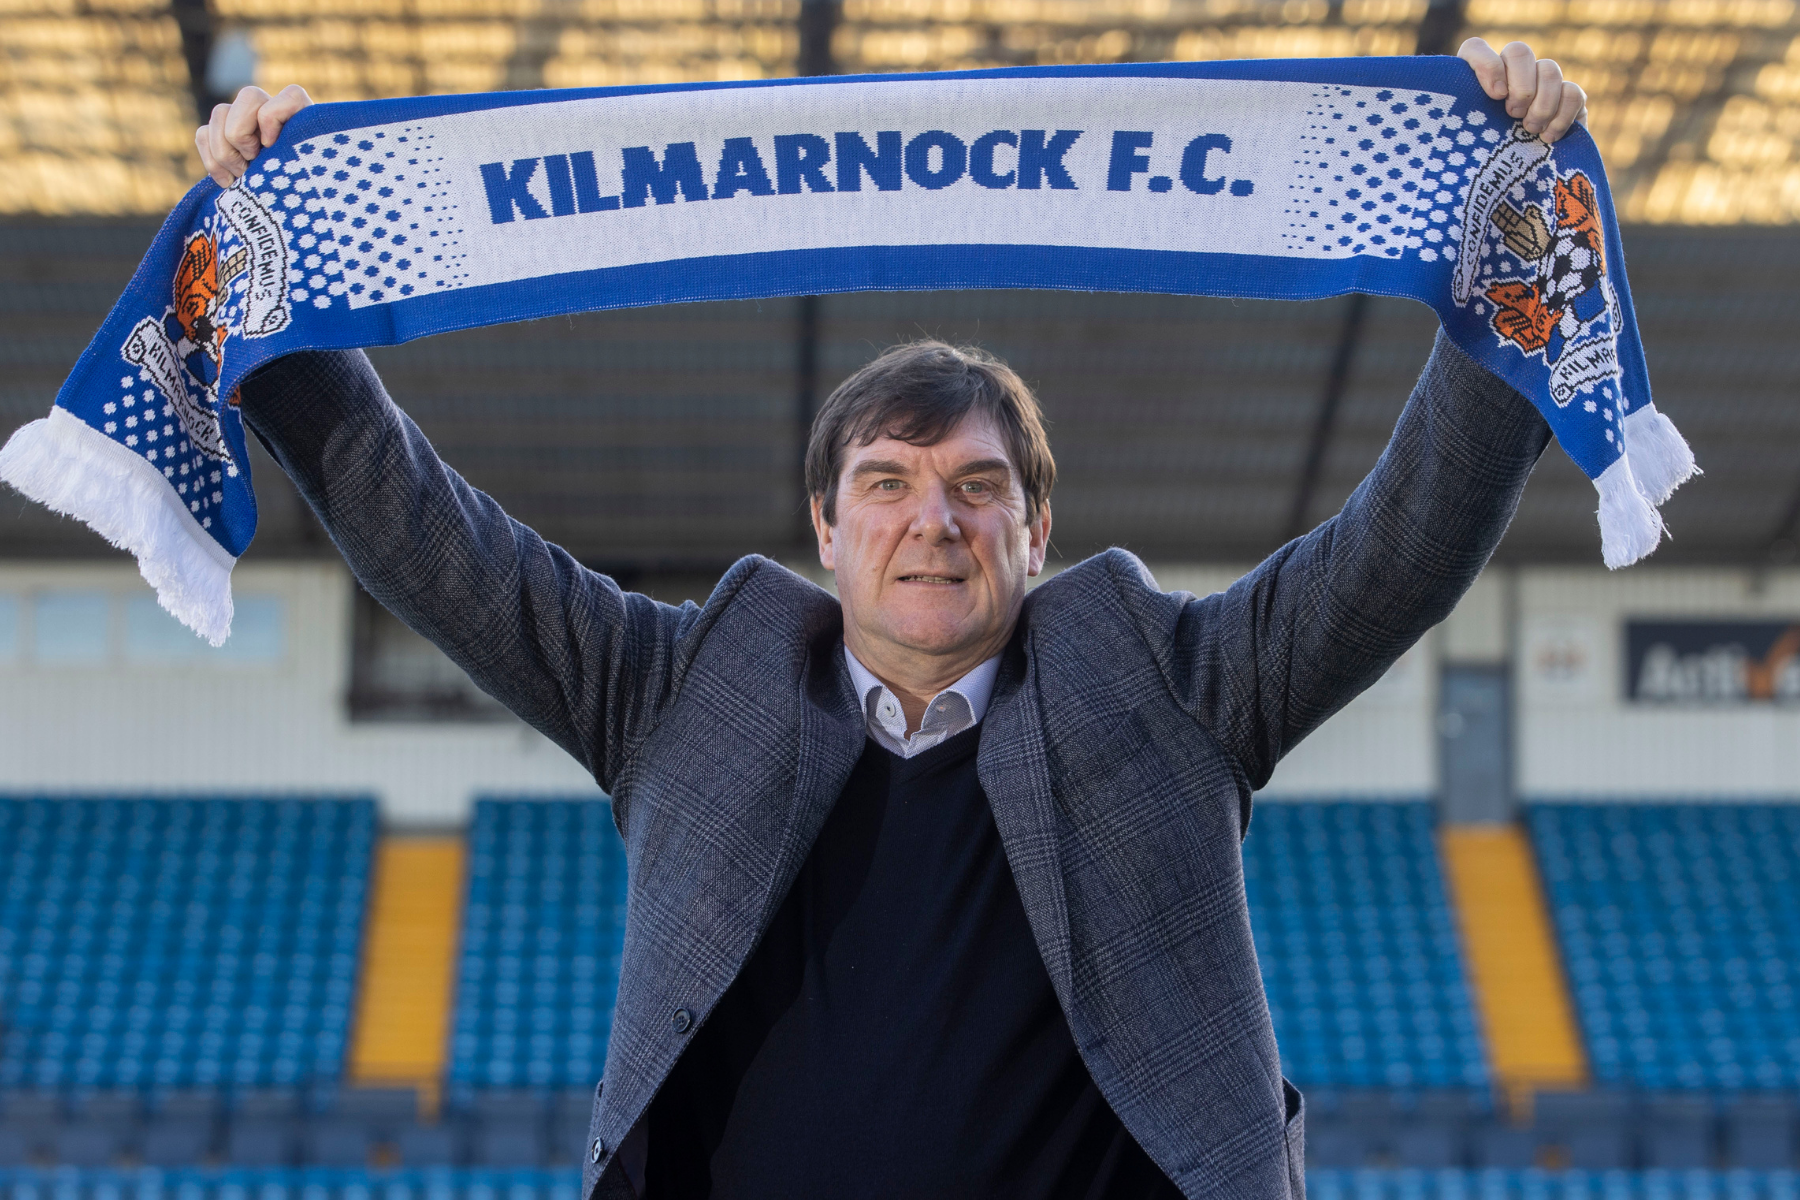 Tommy Wright knew Kilmarnock job was right after Sahara Desert Fitbit notification